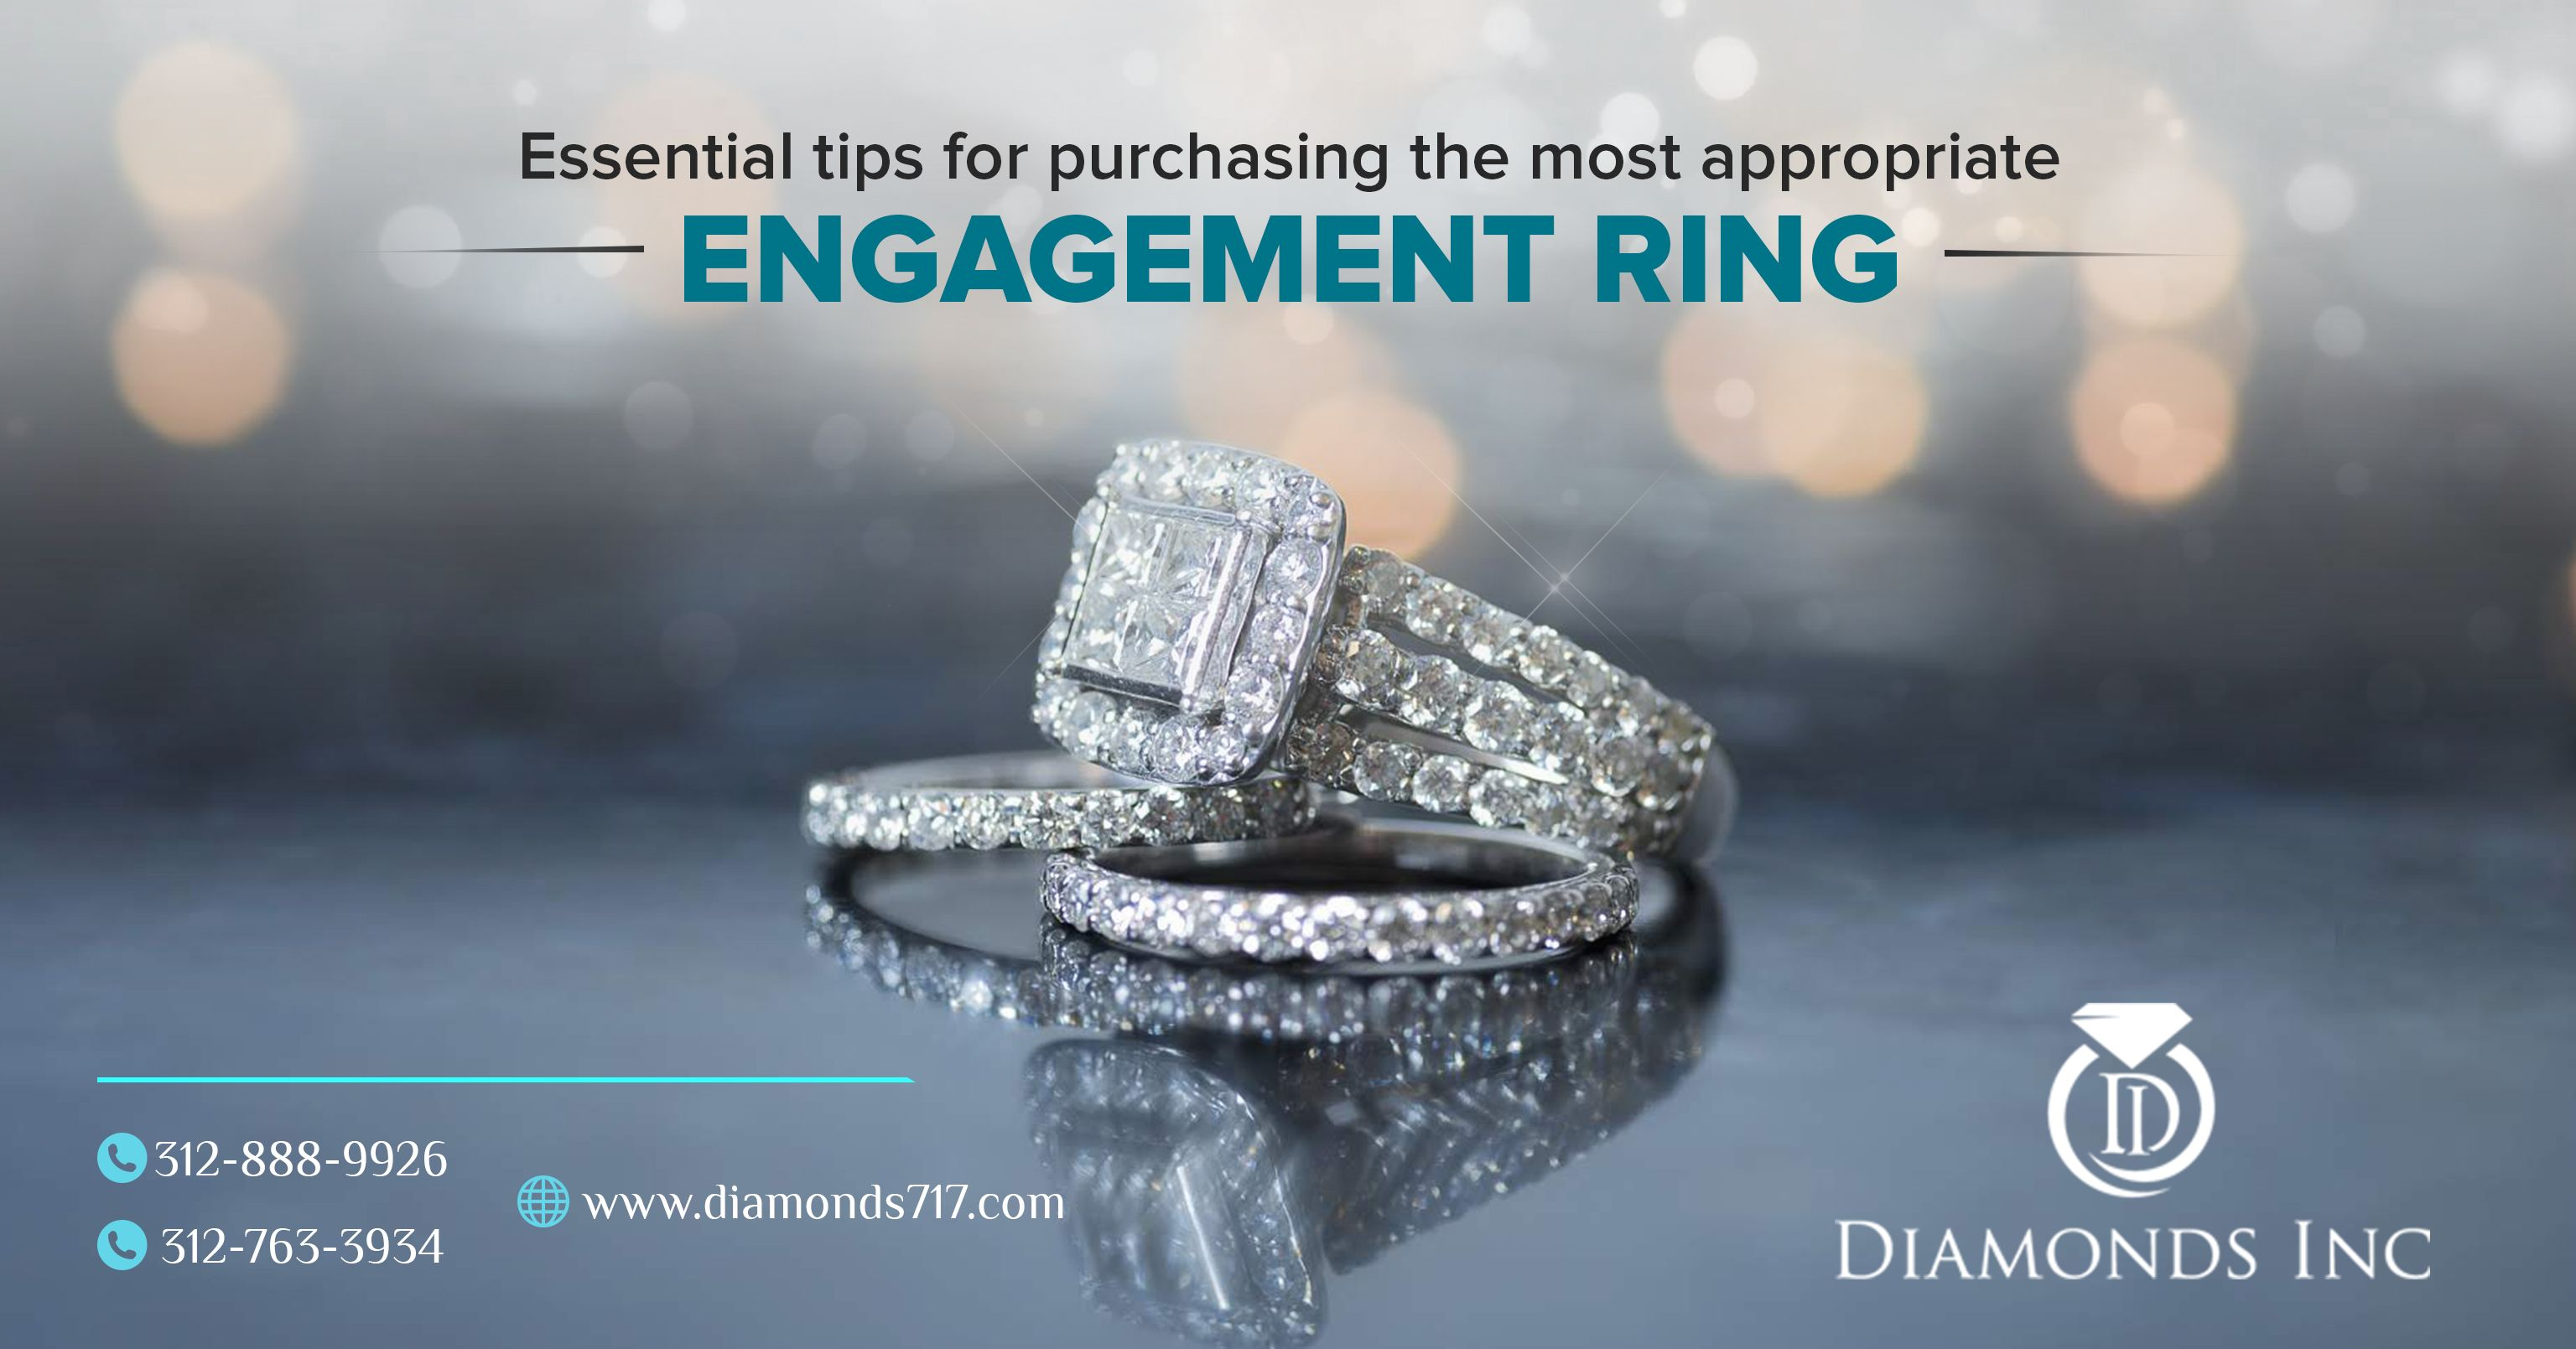 Essential Tips For Purchasing The Most Appropriate Engagement Ring